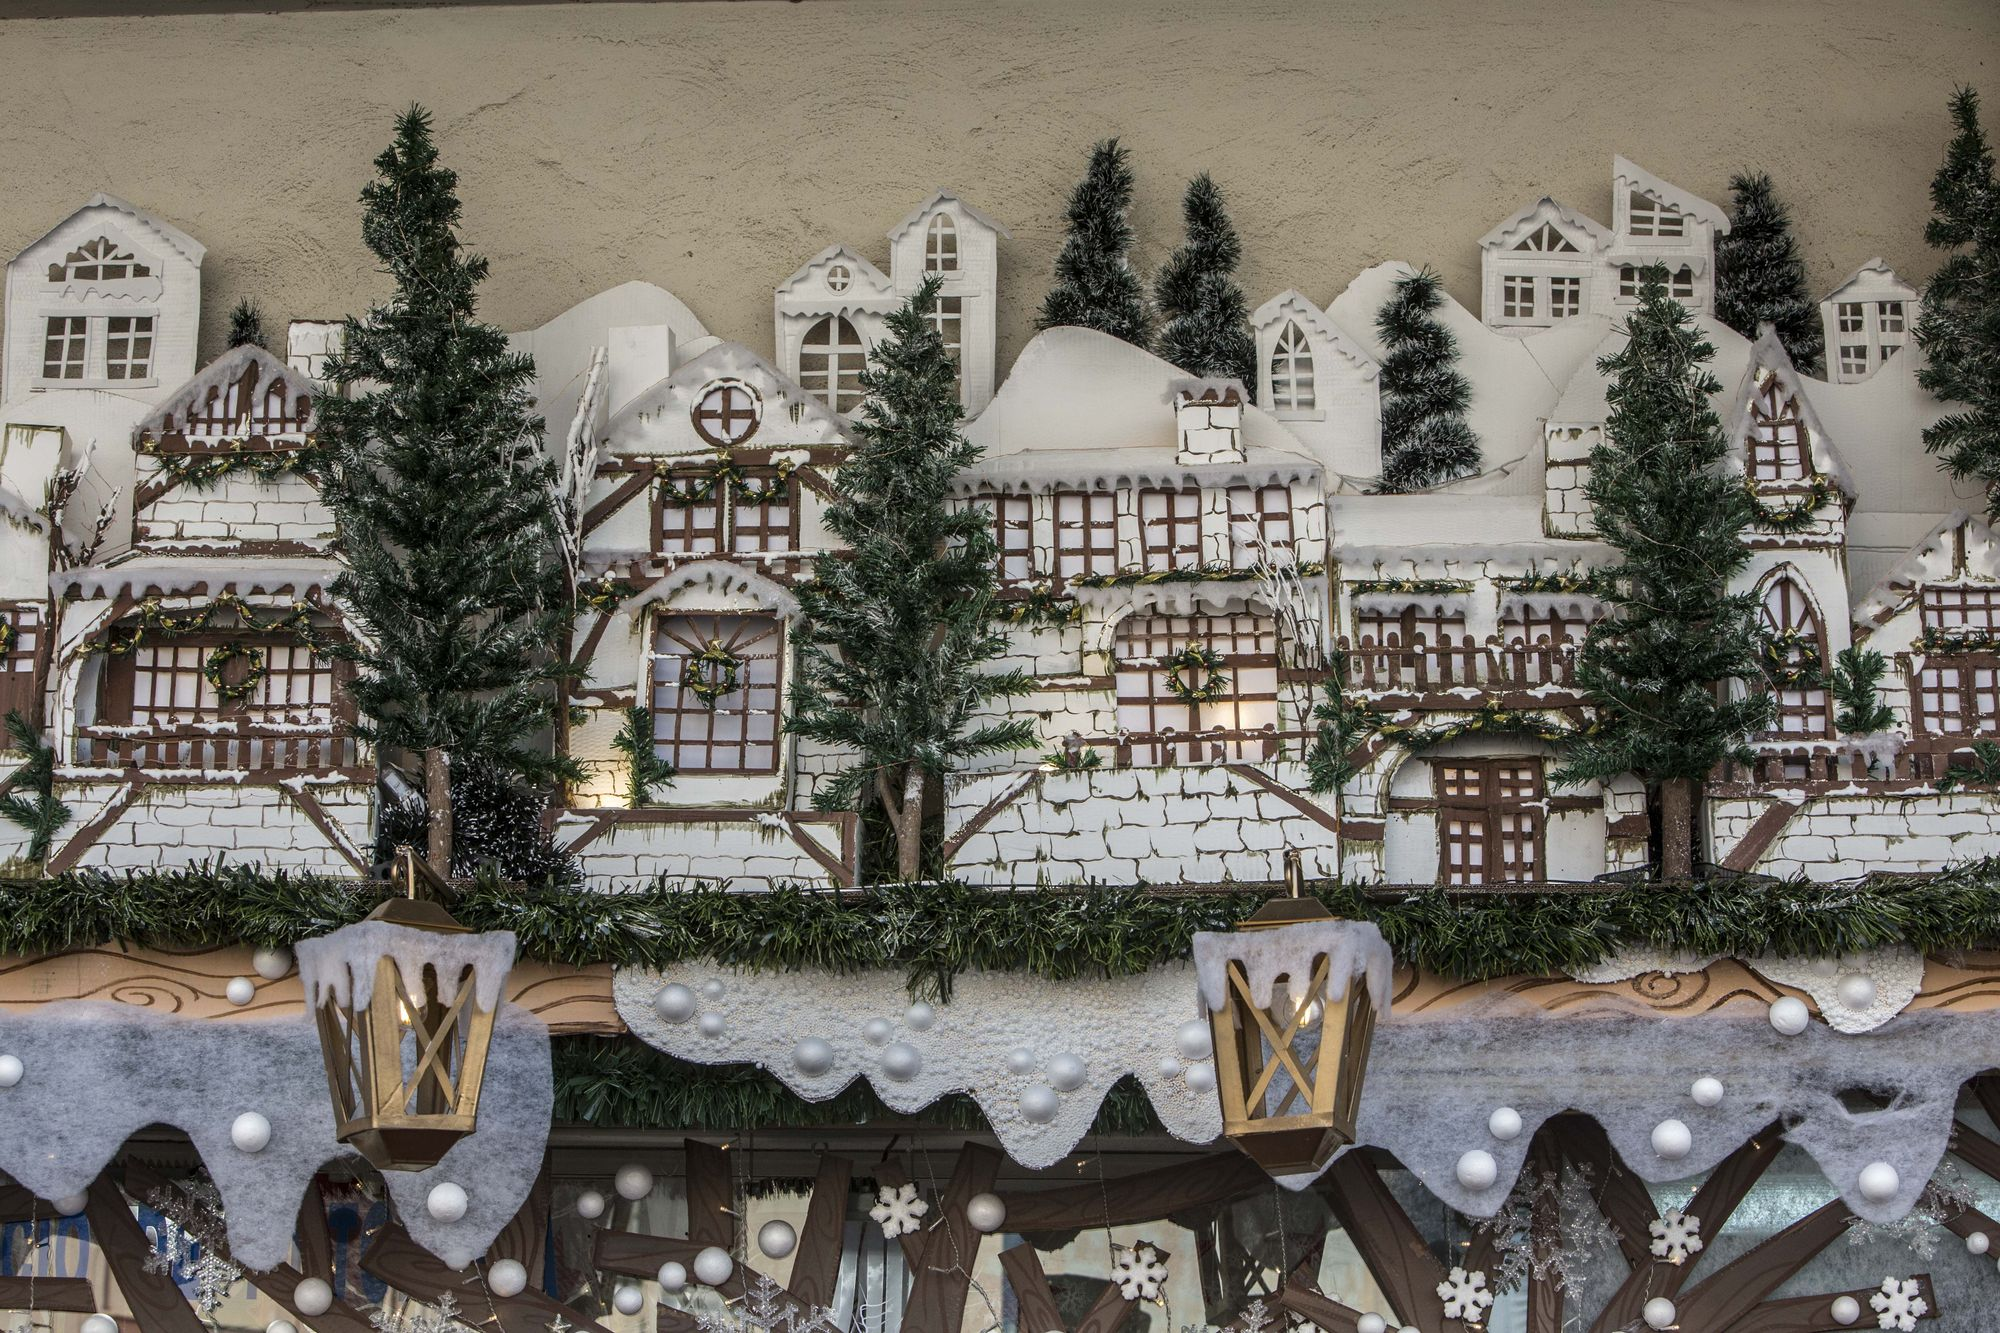 This is the decoration that has won the special prize of the Alicante Commerce Christmas contest